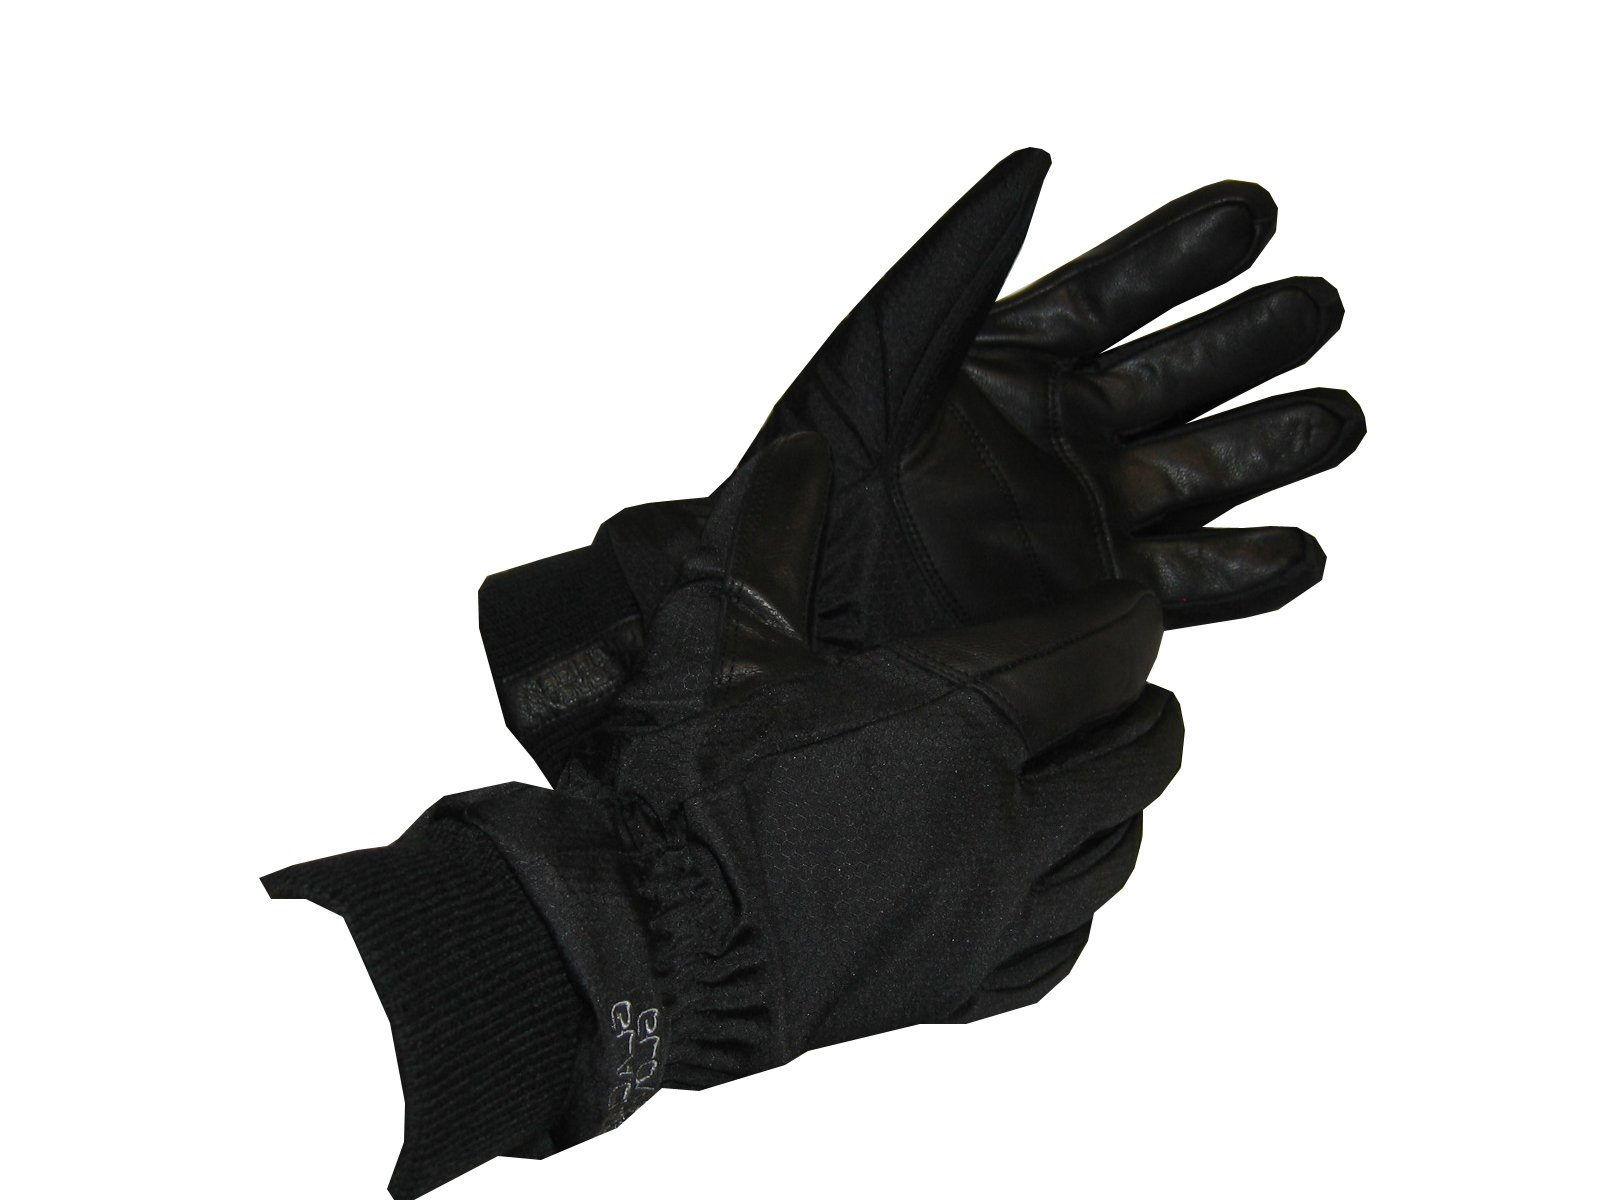 Glacier Glove Alaska Waterproof Insulated Glove 775BK-L by Insulated Gloves